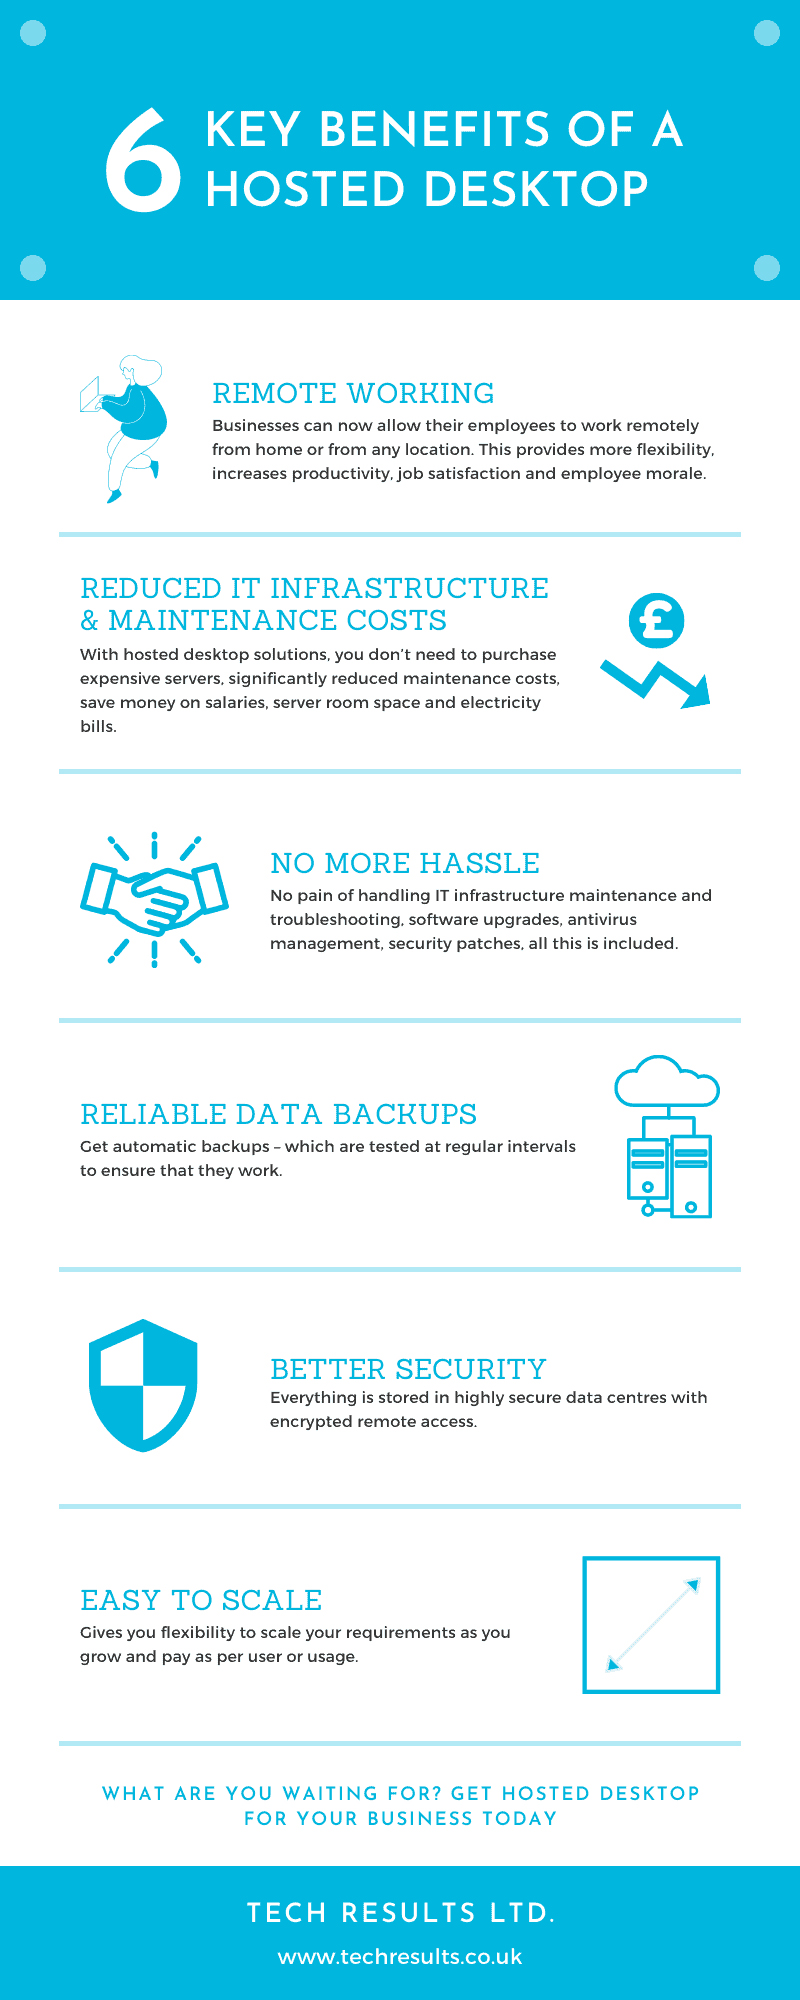 6 Key Benefits of a Hosted Desktop - Infographic